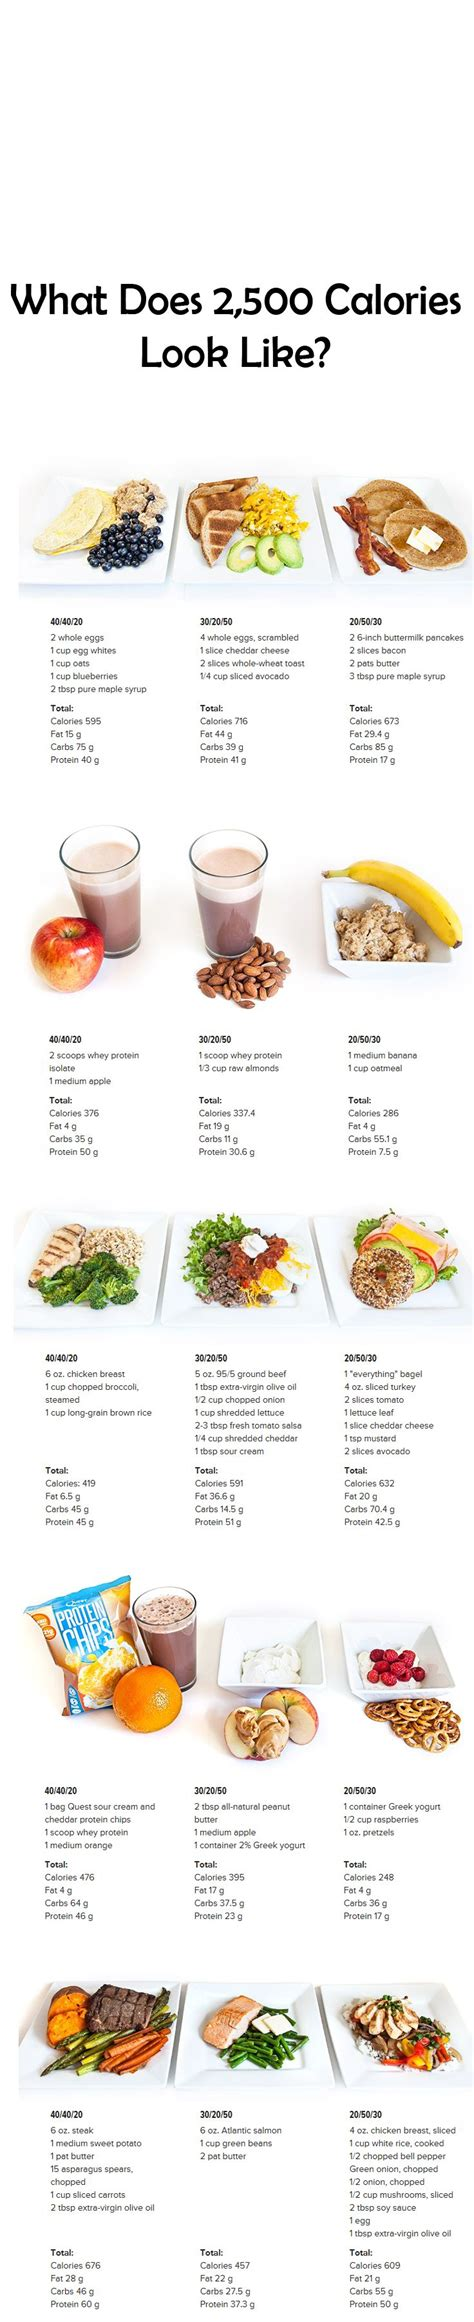 best diet for me picture 5